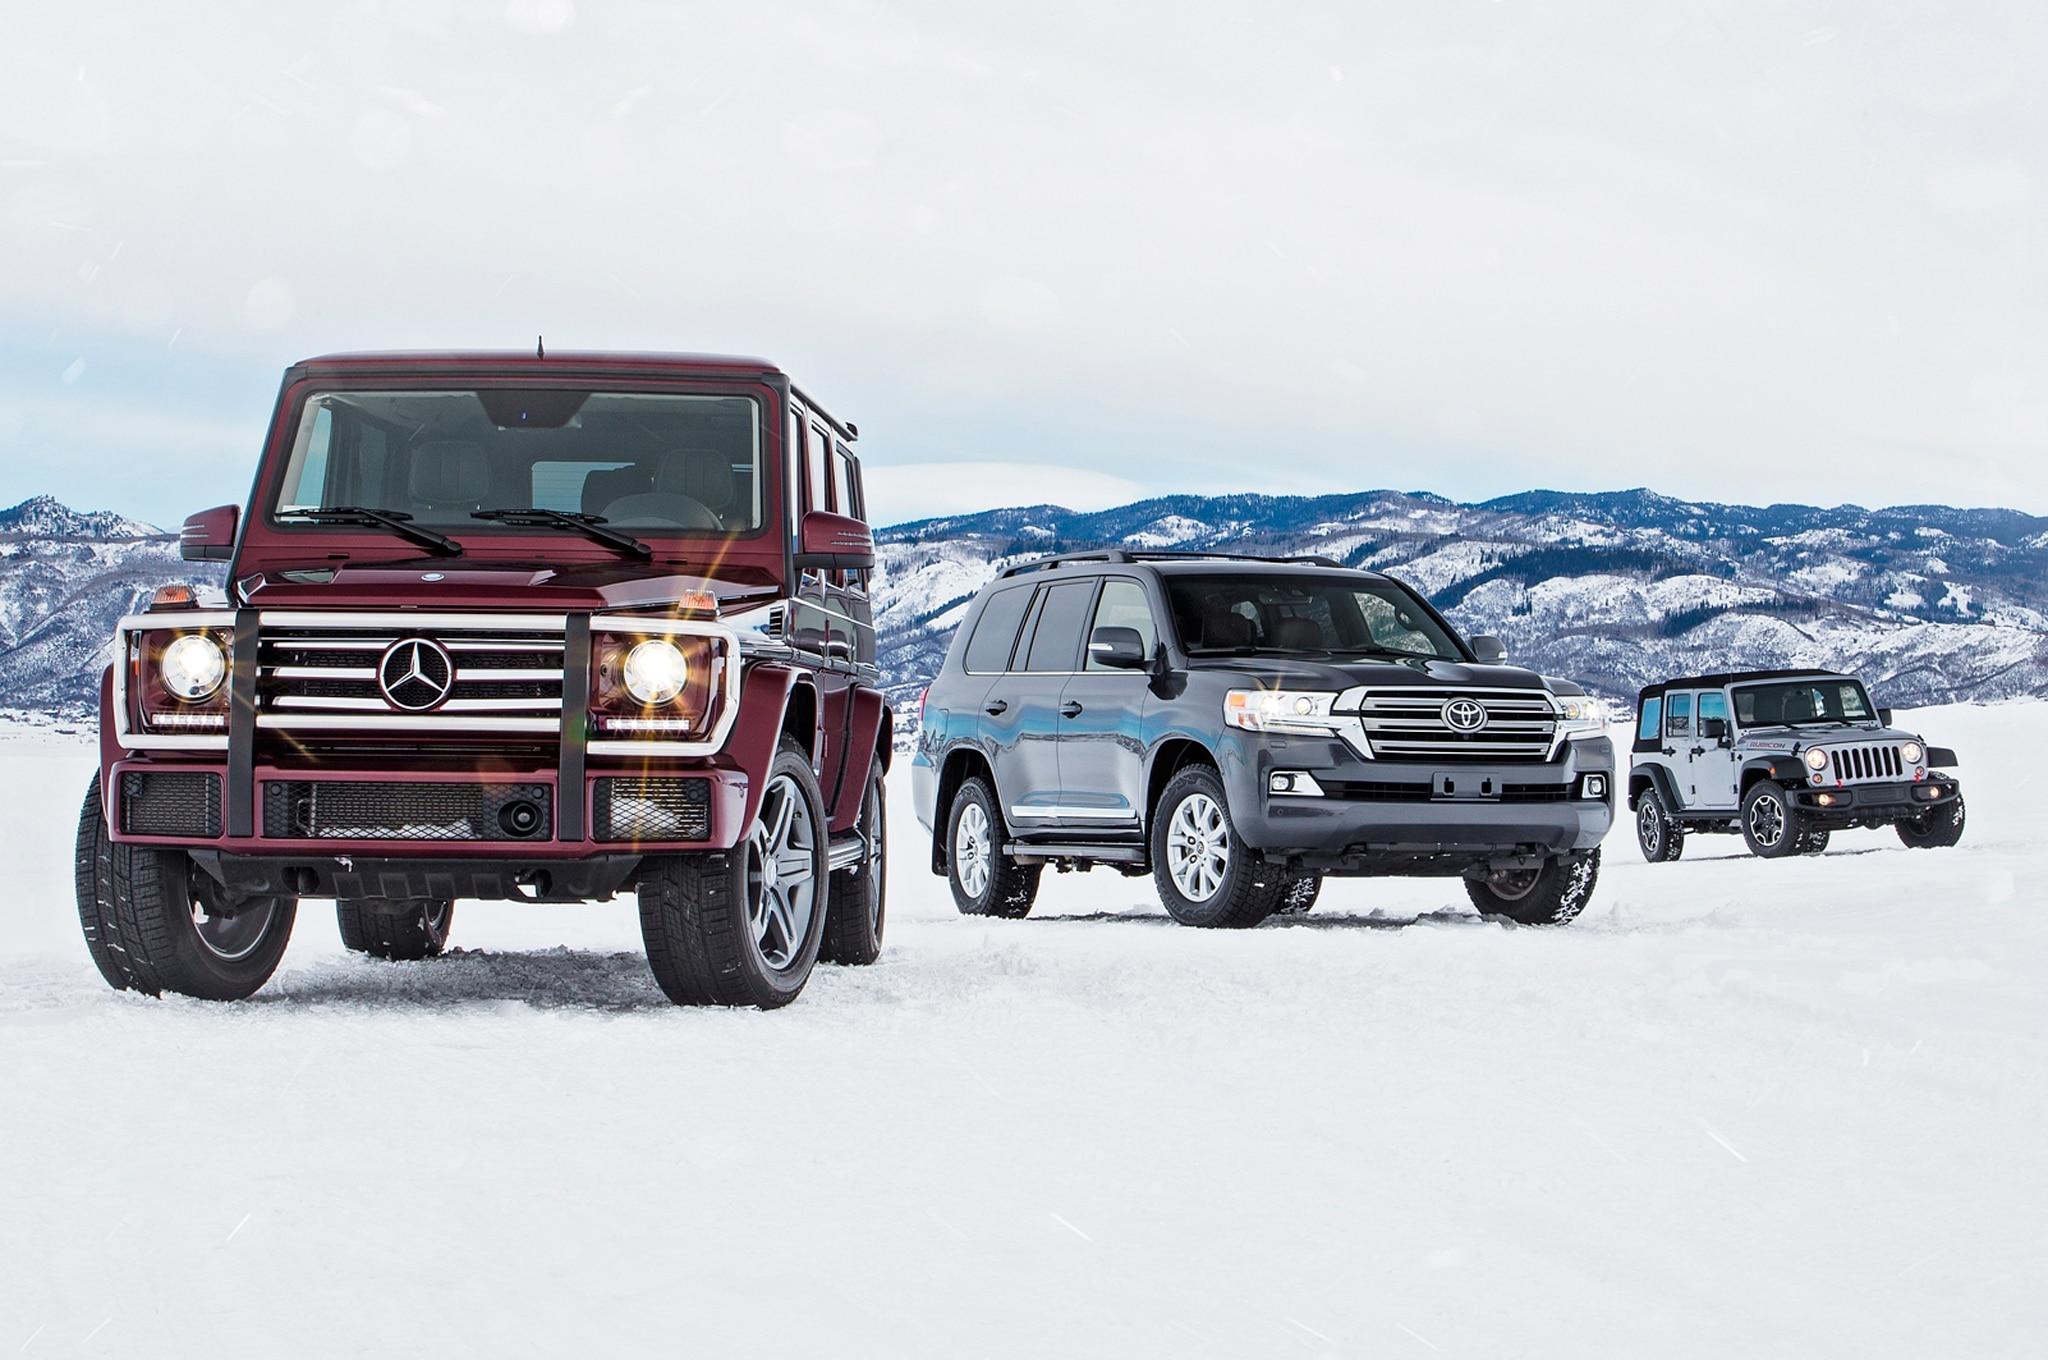 2016 Jeep Wrangler Unlimited Rubicon Vs Mercedes Benz G550 Vs Toyota Land Cruiser Homepage 02